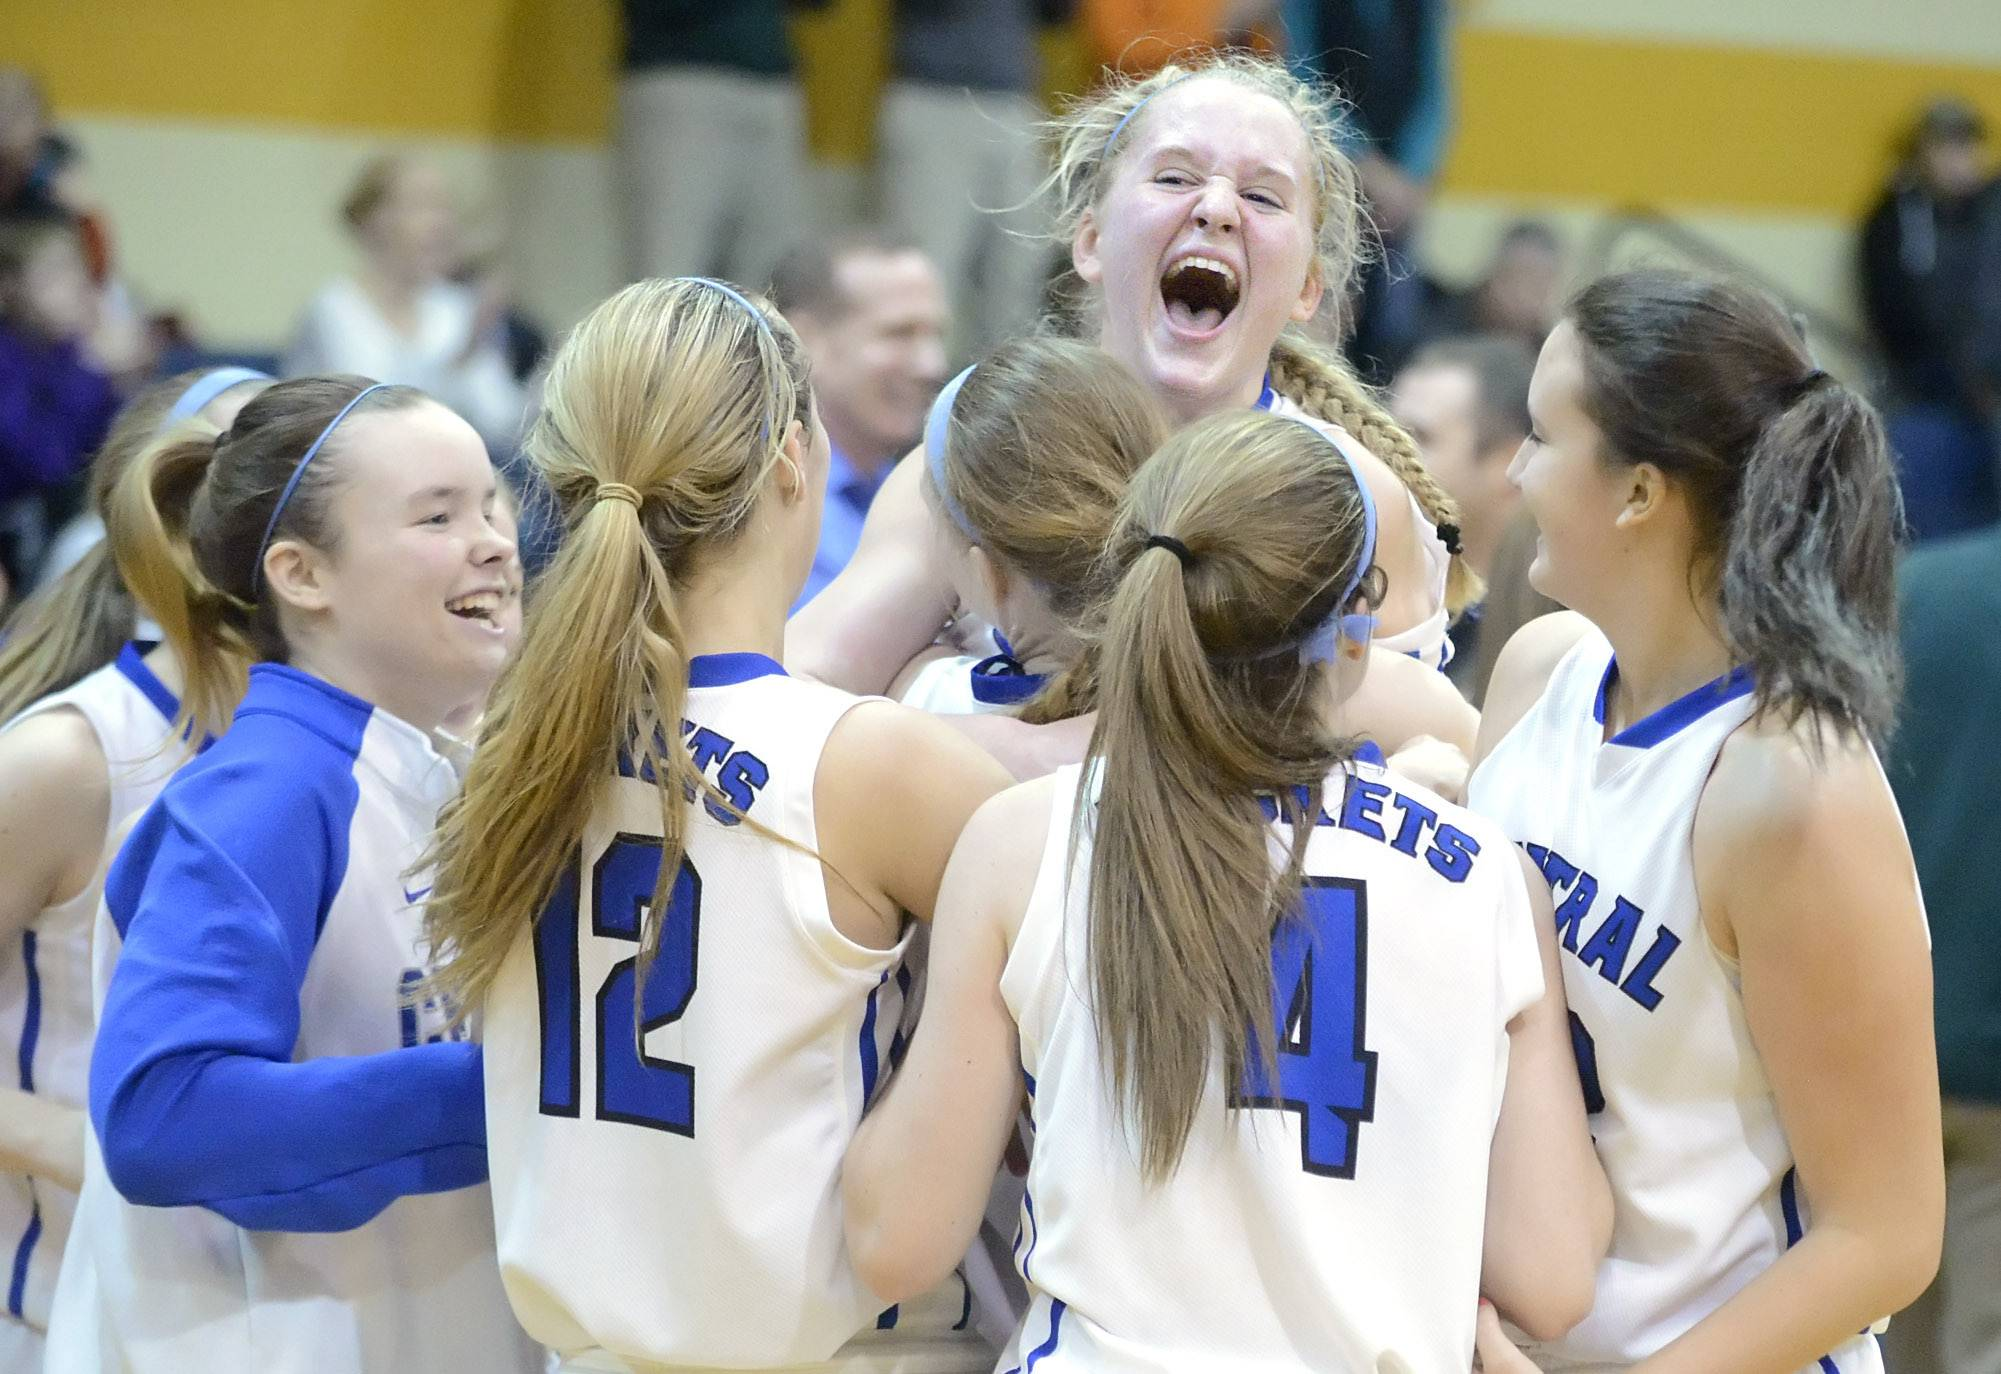 Images: Burlington Central vs. St. Edward girls basketball